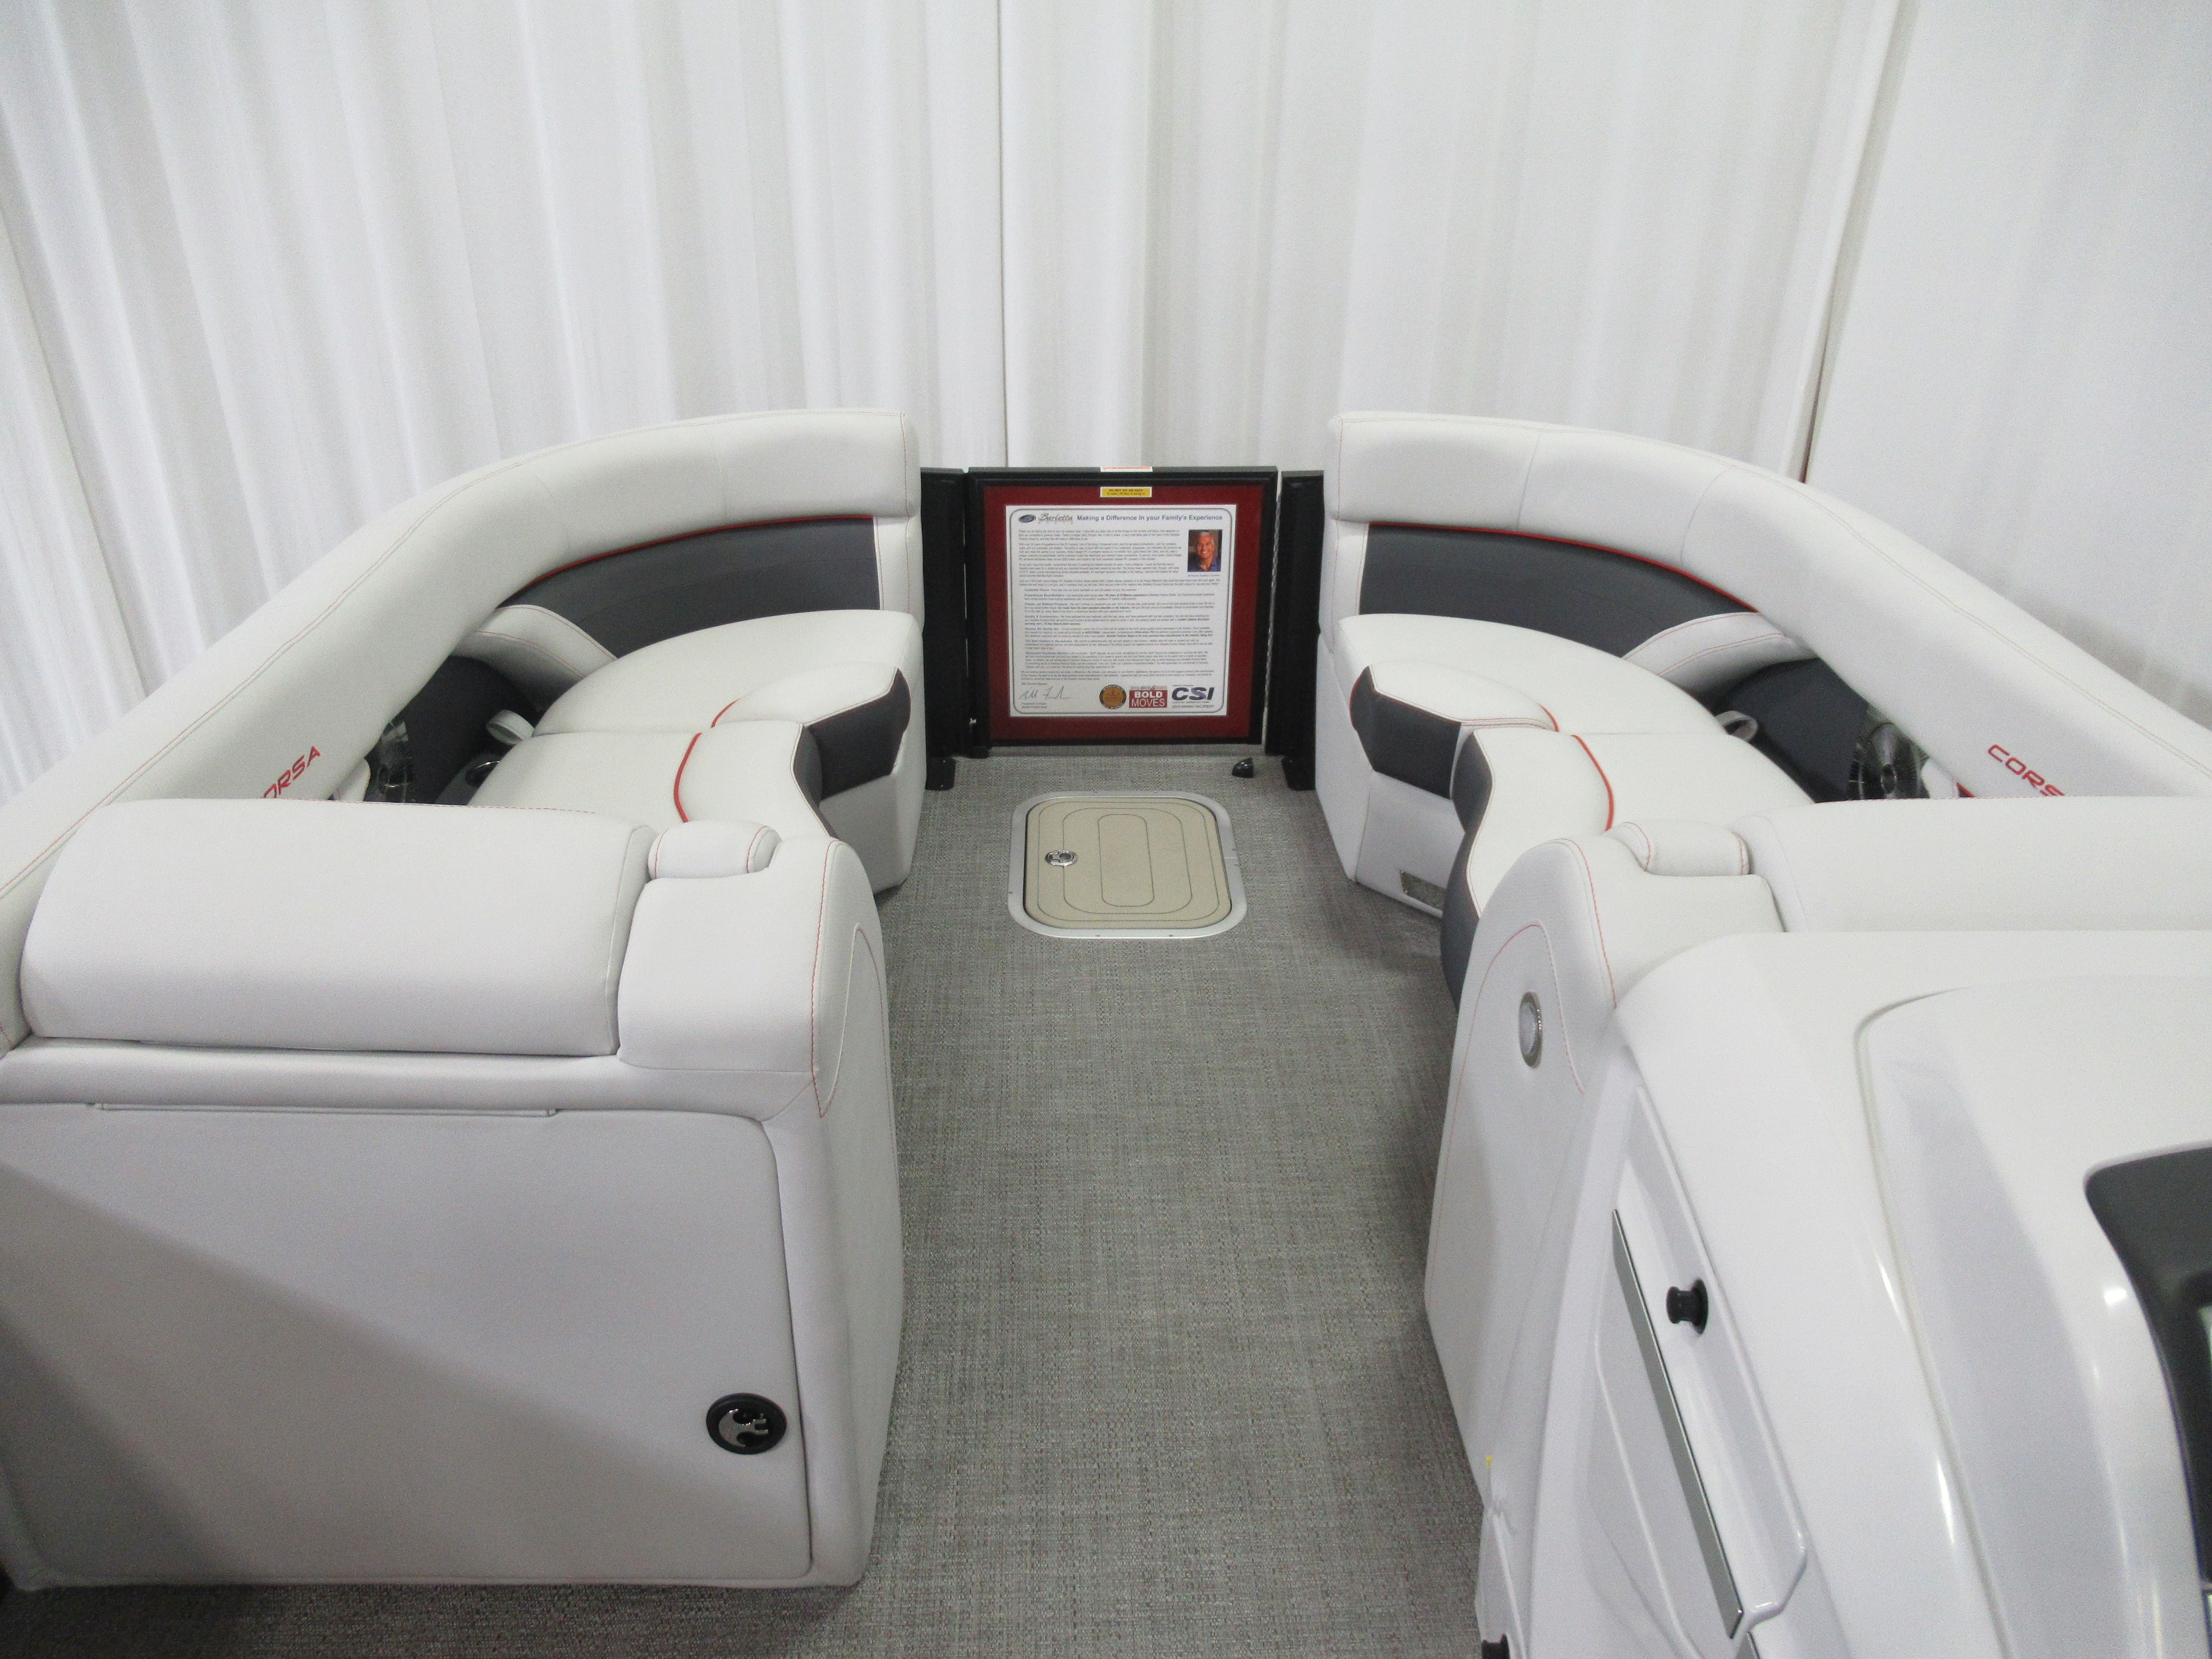 2021 Barletta boat for sale, model of the boat is CORSA 23UC & Image # 4 of 11